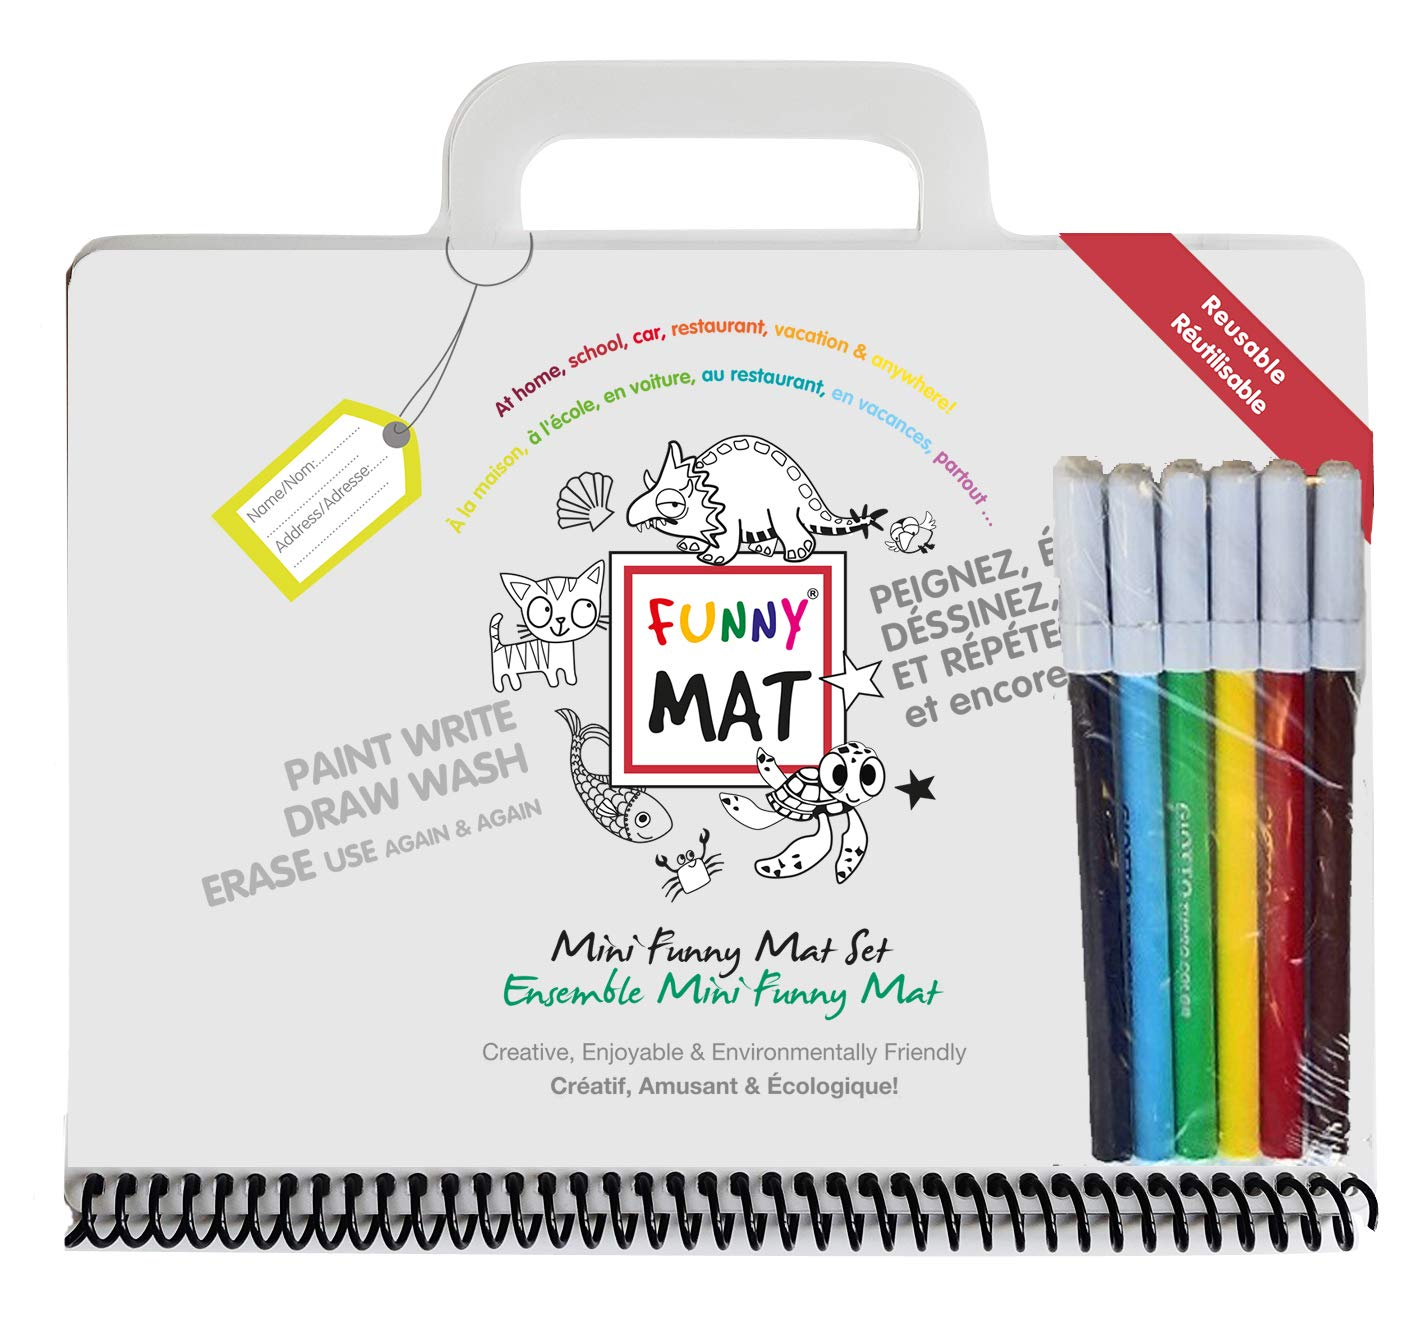 Amazon com: Funny Mat Mini Travel Set - Spiral Bound Erasable